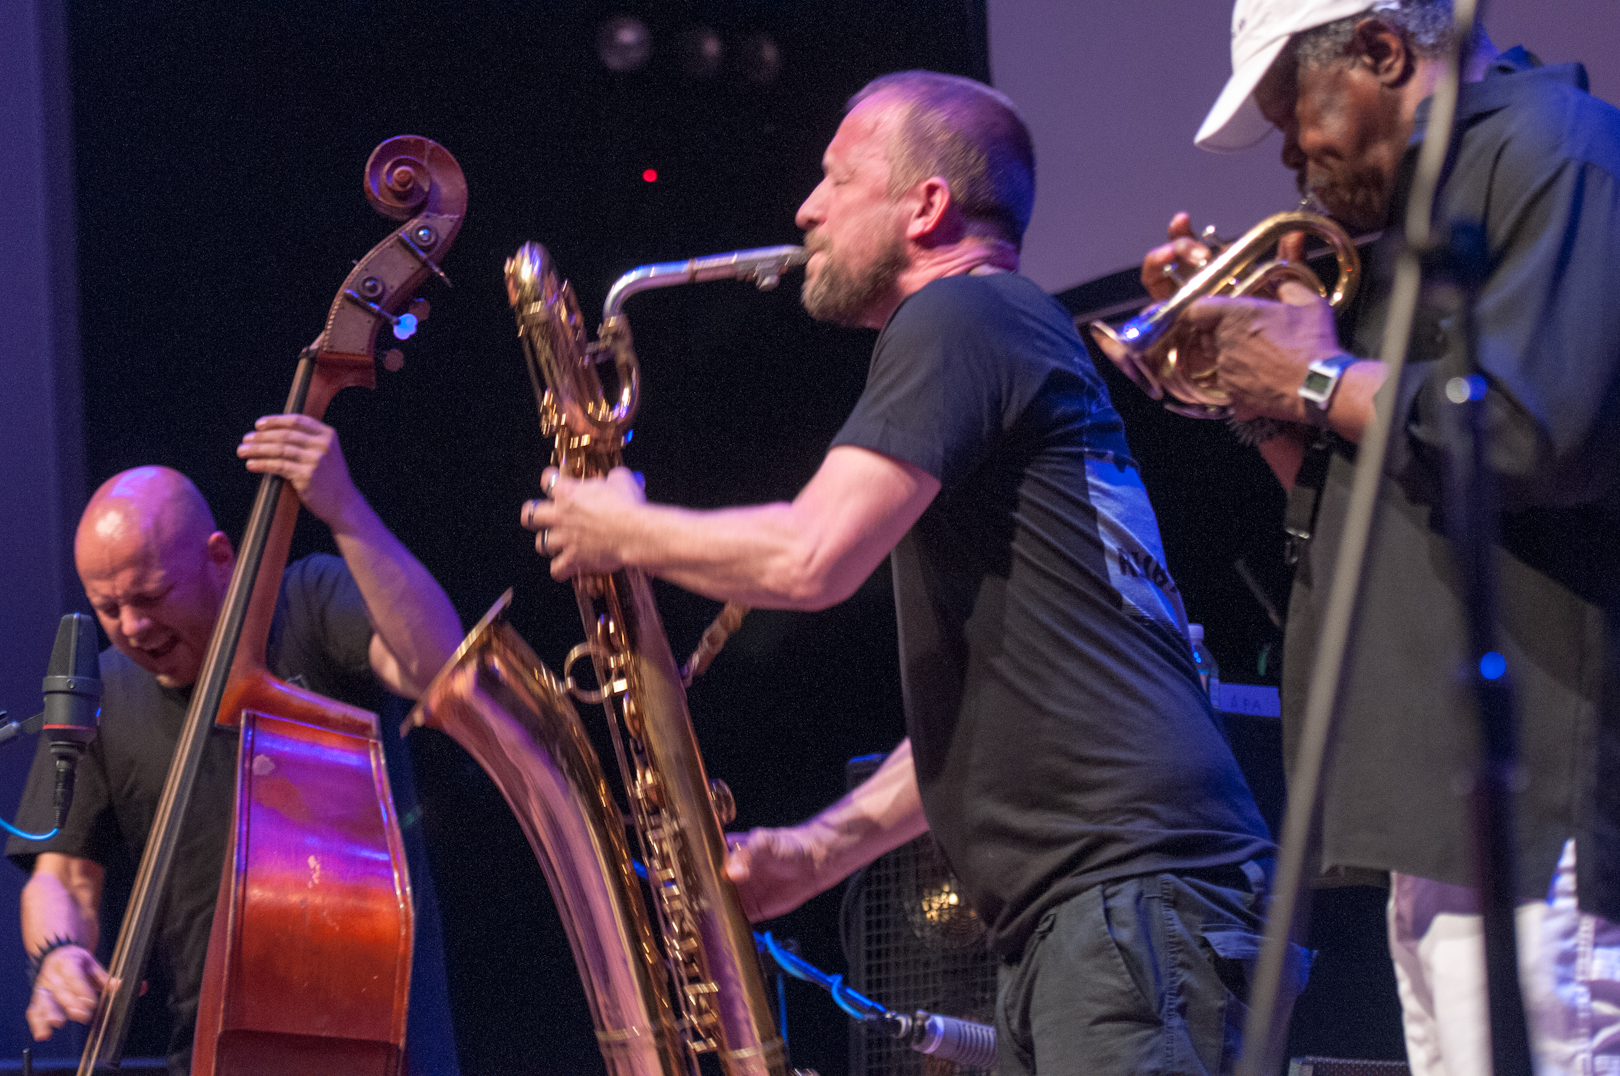 Mats Gustafsson, Joe Mcphee And Ingebrigt Haker Flaten With The Thing At The Vision Festival 2012